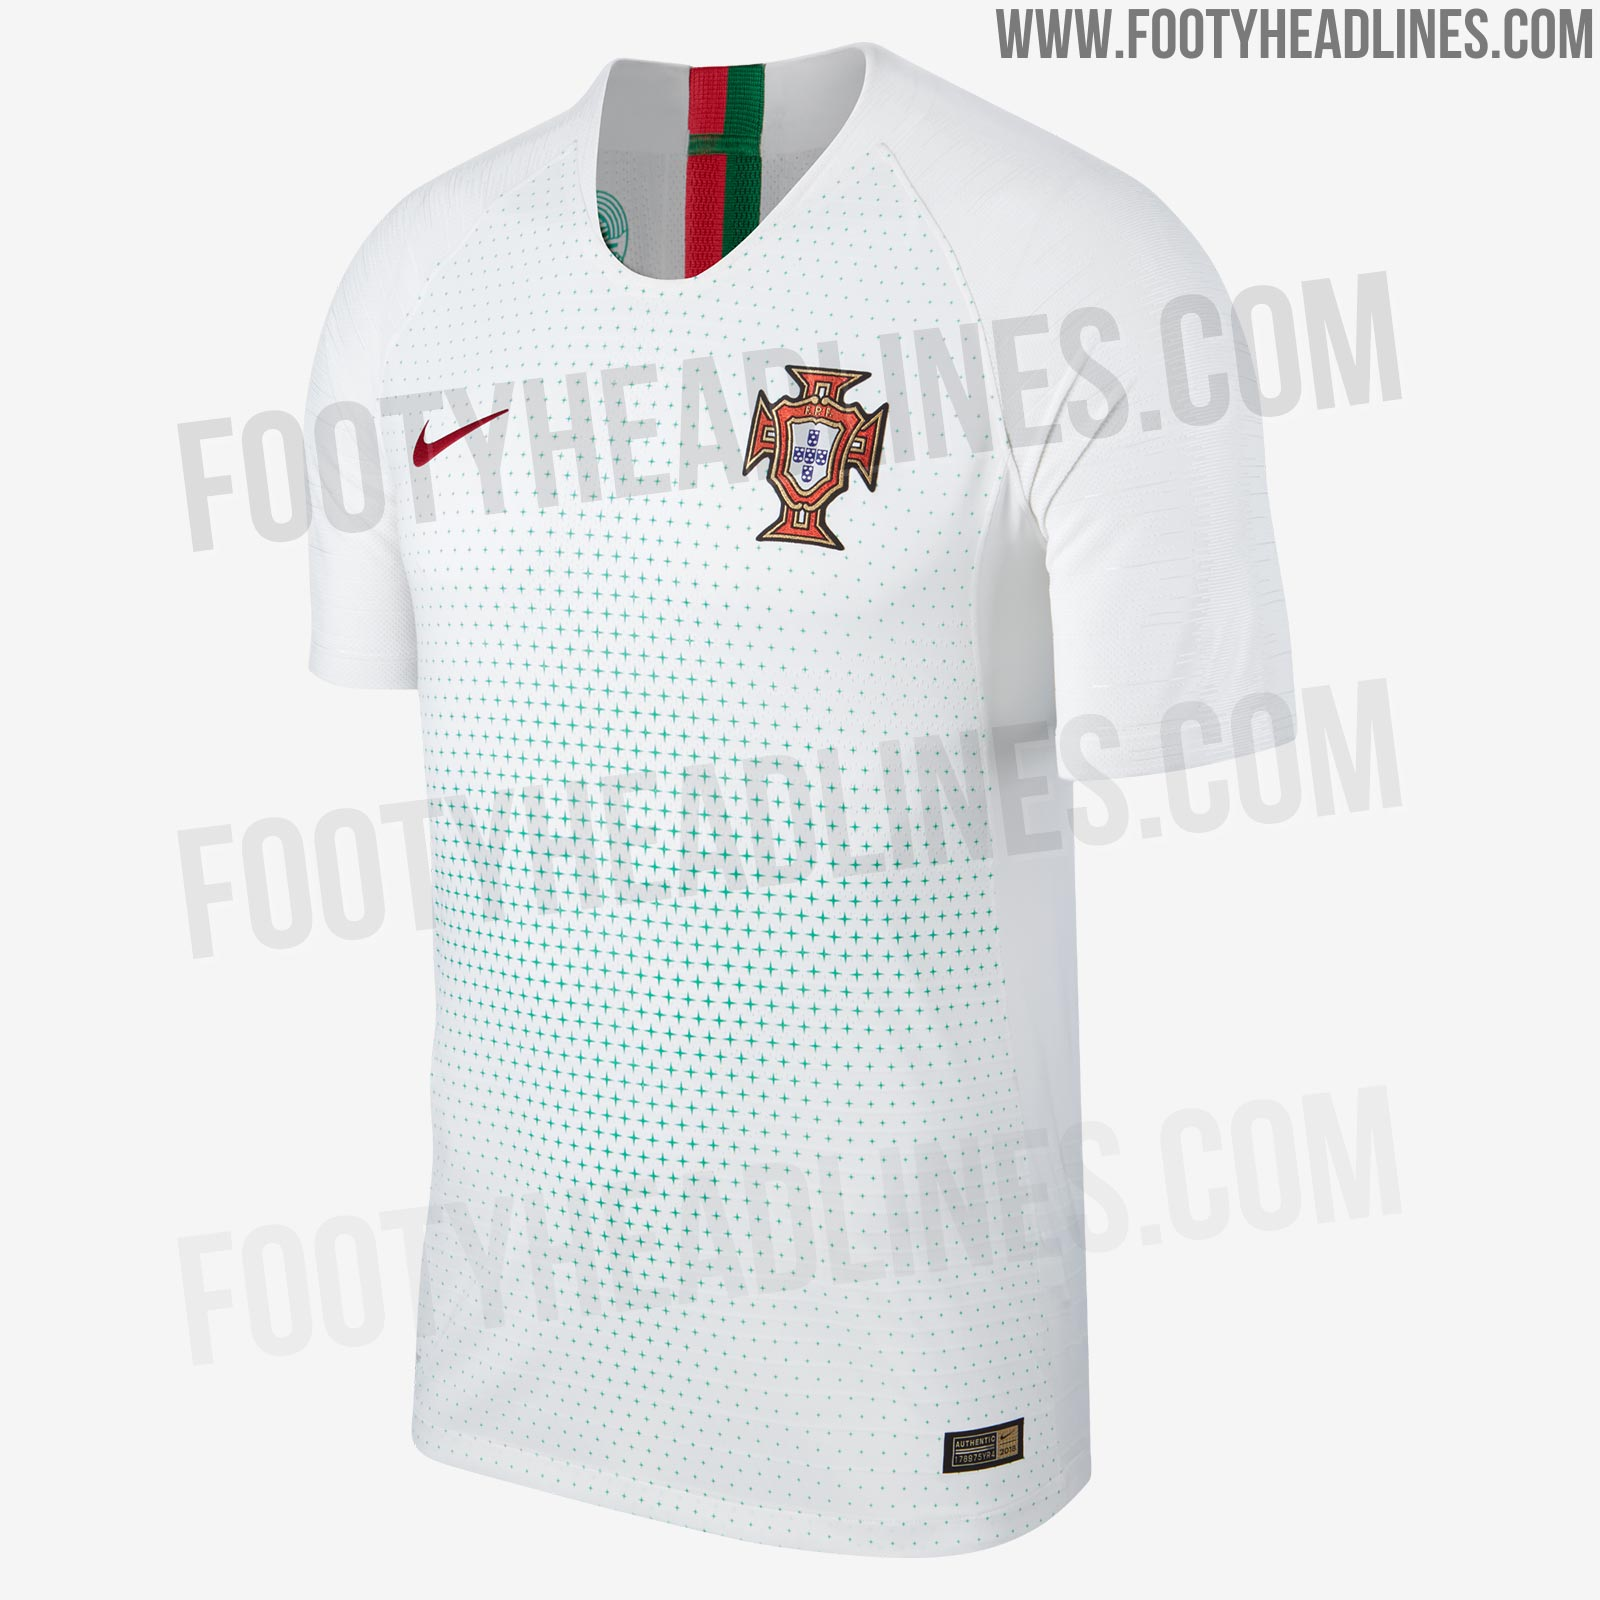 portugal 2018 world cup away kit revealed footy headlines